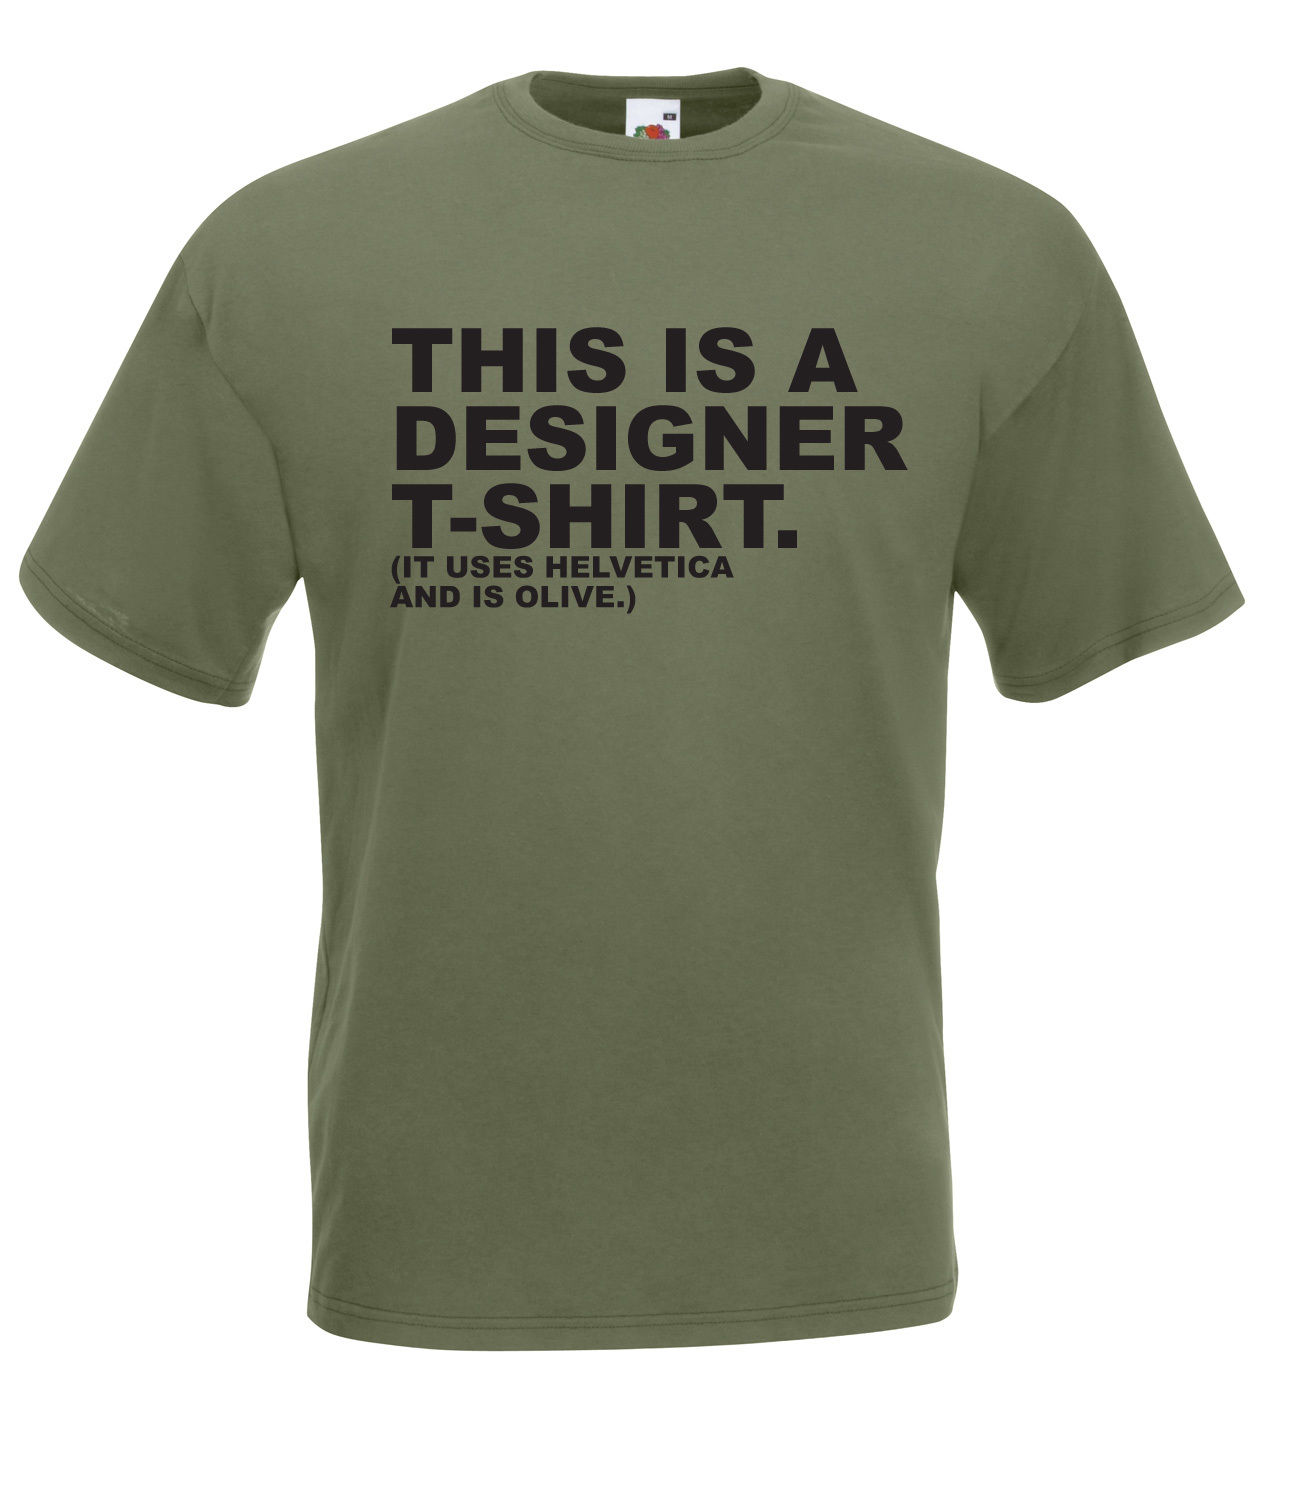 fc3bed7b4 THIS IS A DESIGNER T-SHIRT….. GRAPHIC FUNNY HIGH QUALITY 100% COTTON ...